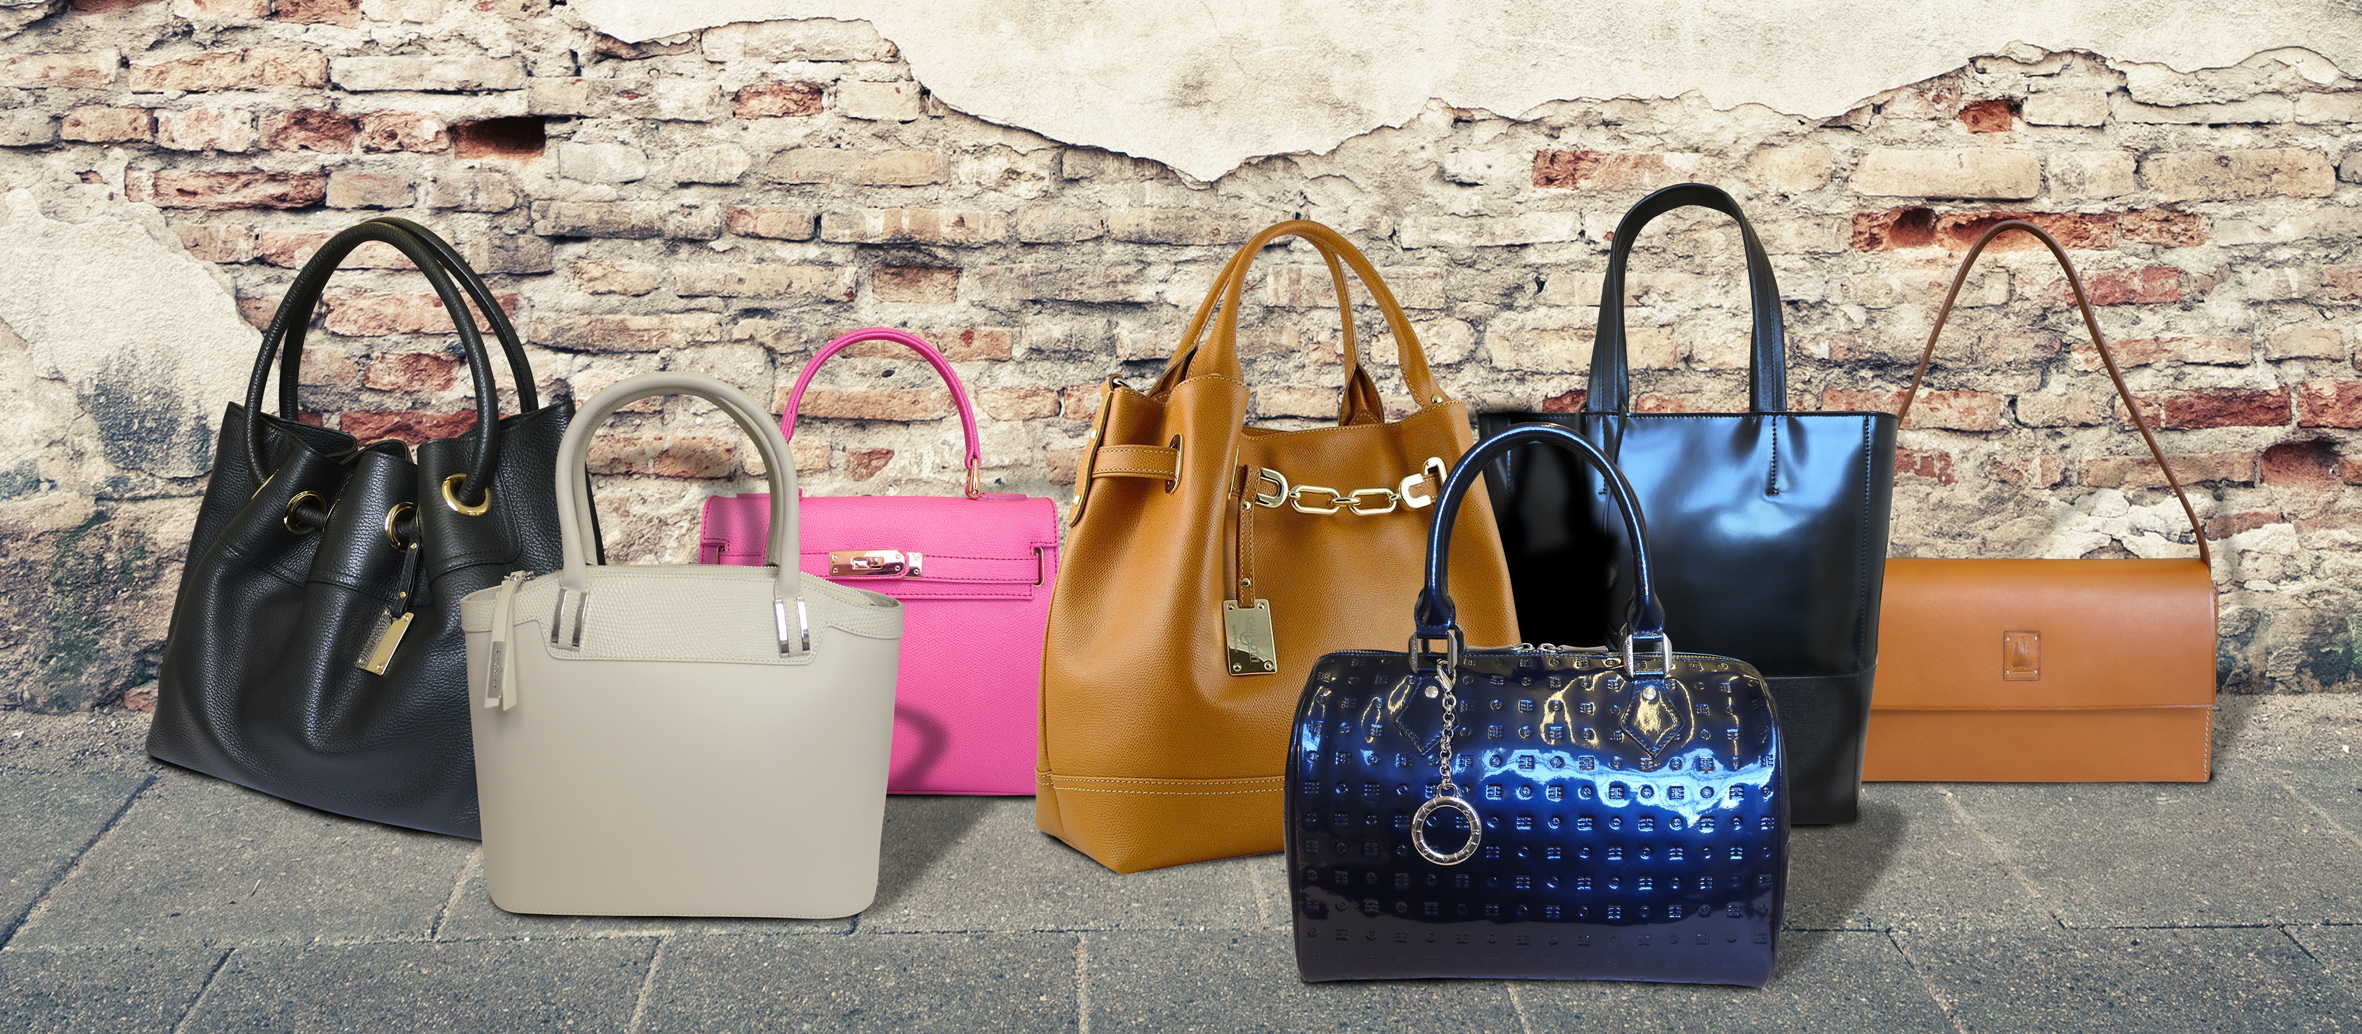 d7d1b26bf4 Attavanti is the destination site for gorgeous luxury handmade Italian  handbags where you are sure to find the perfect gift .